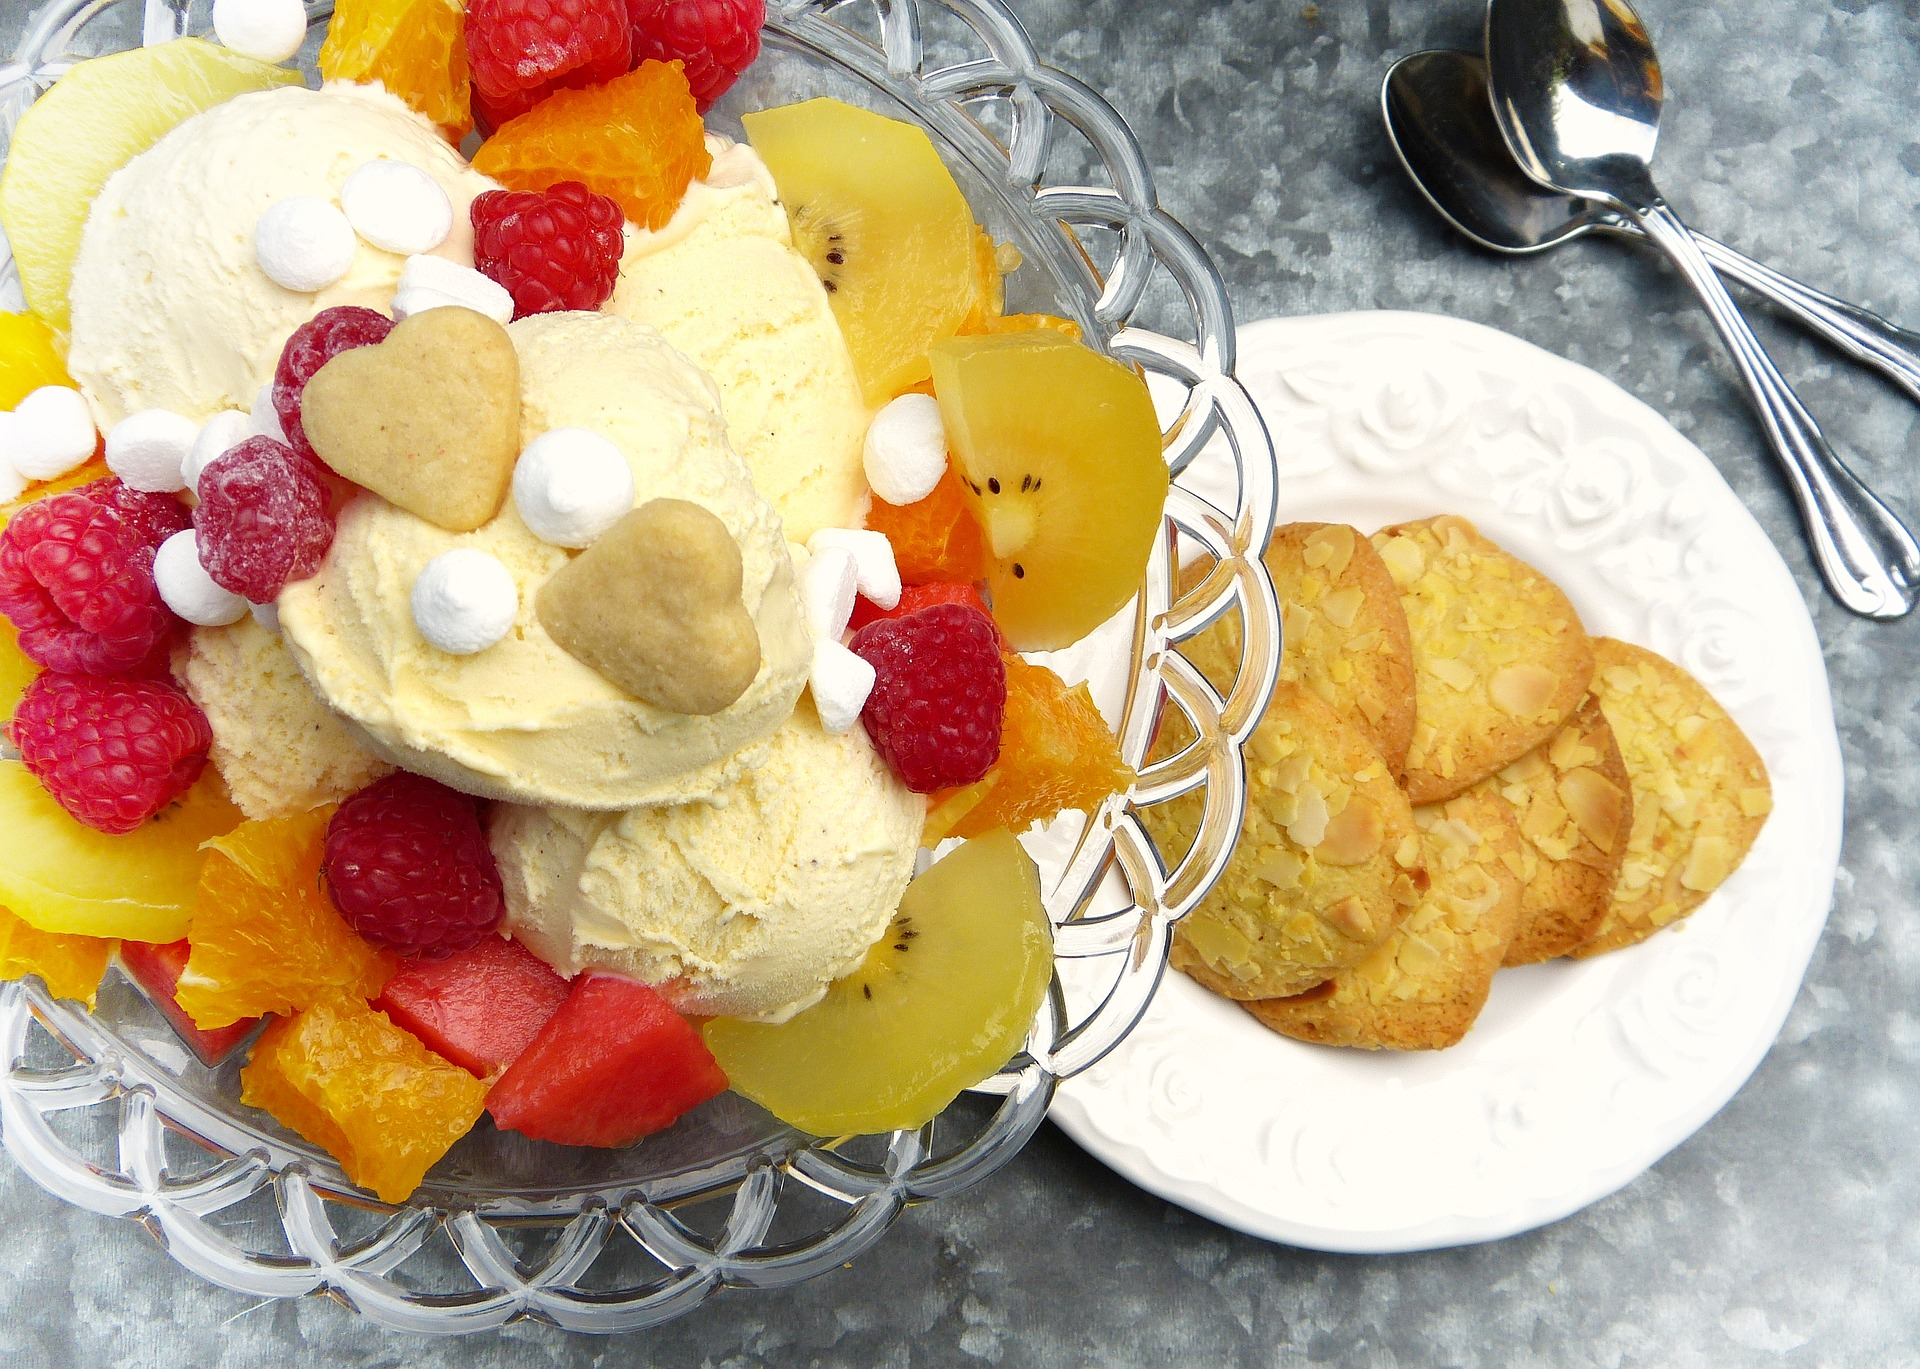 Ice Cream and Desserts at Coconut Grove Restaurant, Fiji